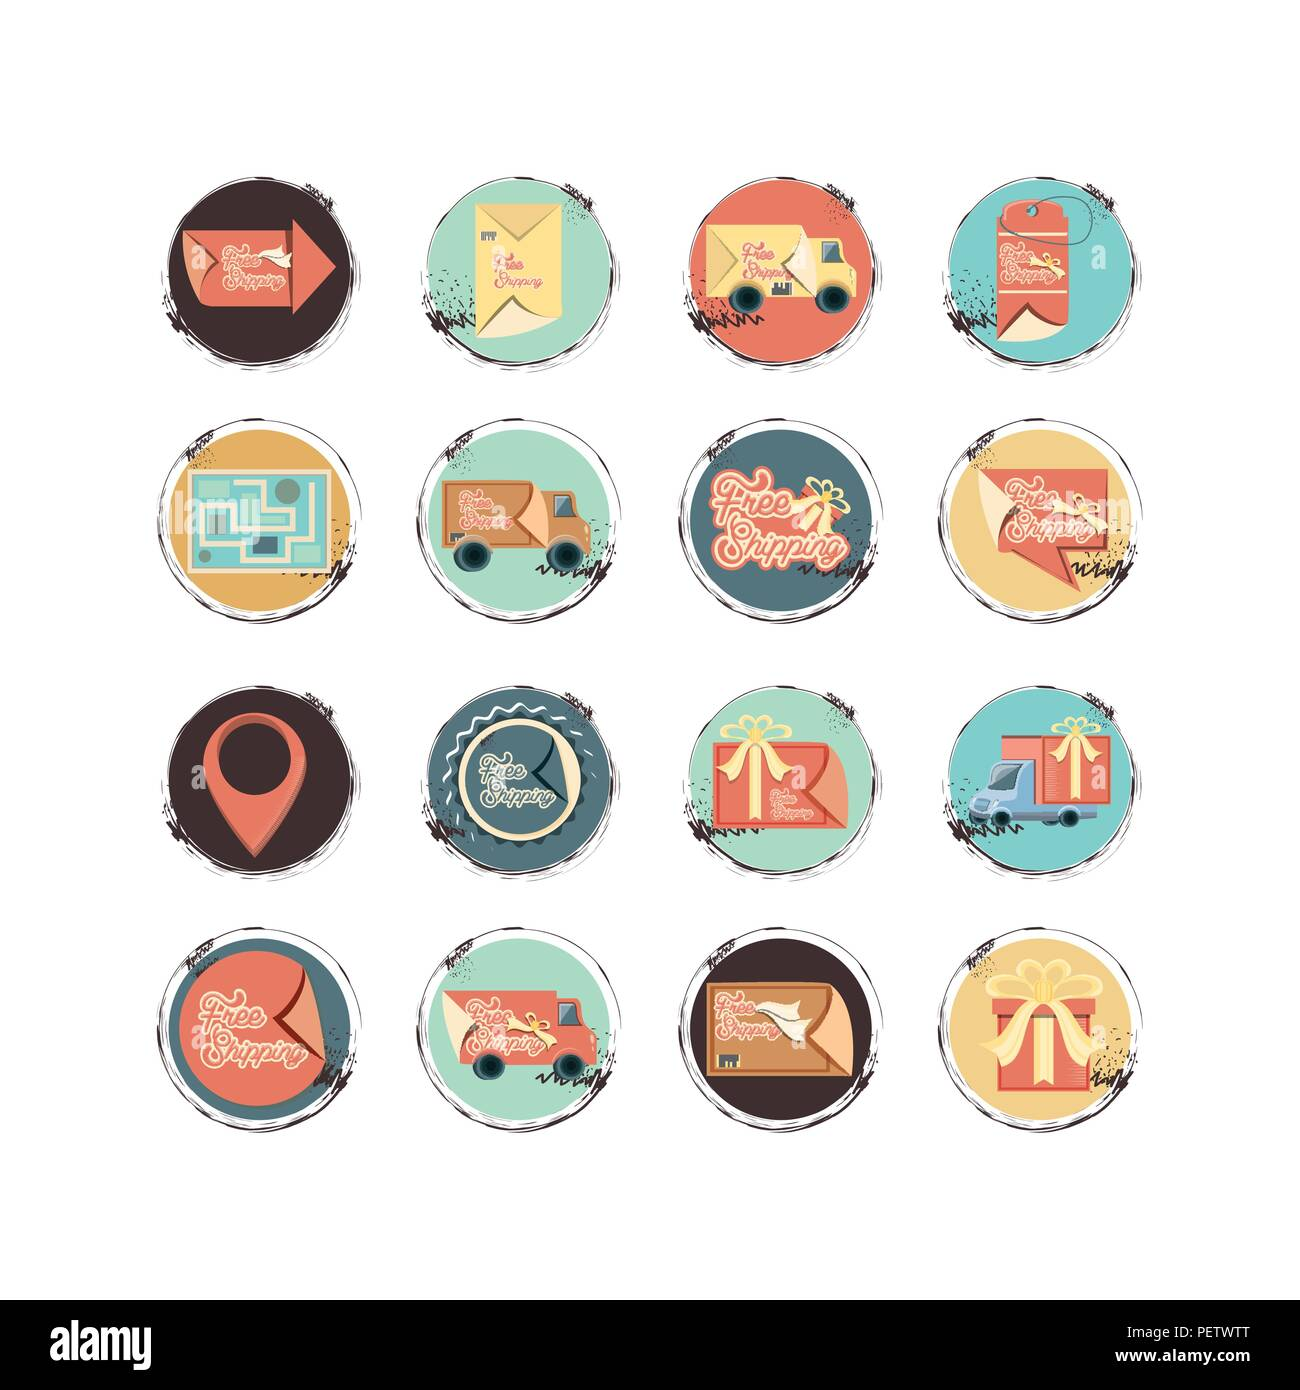 food delivery service set icons vector illustration design - Stock Image